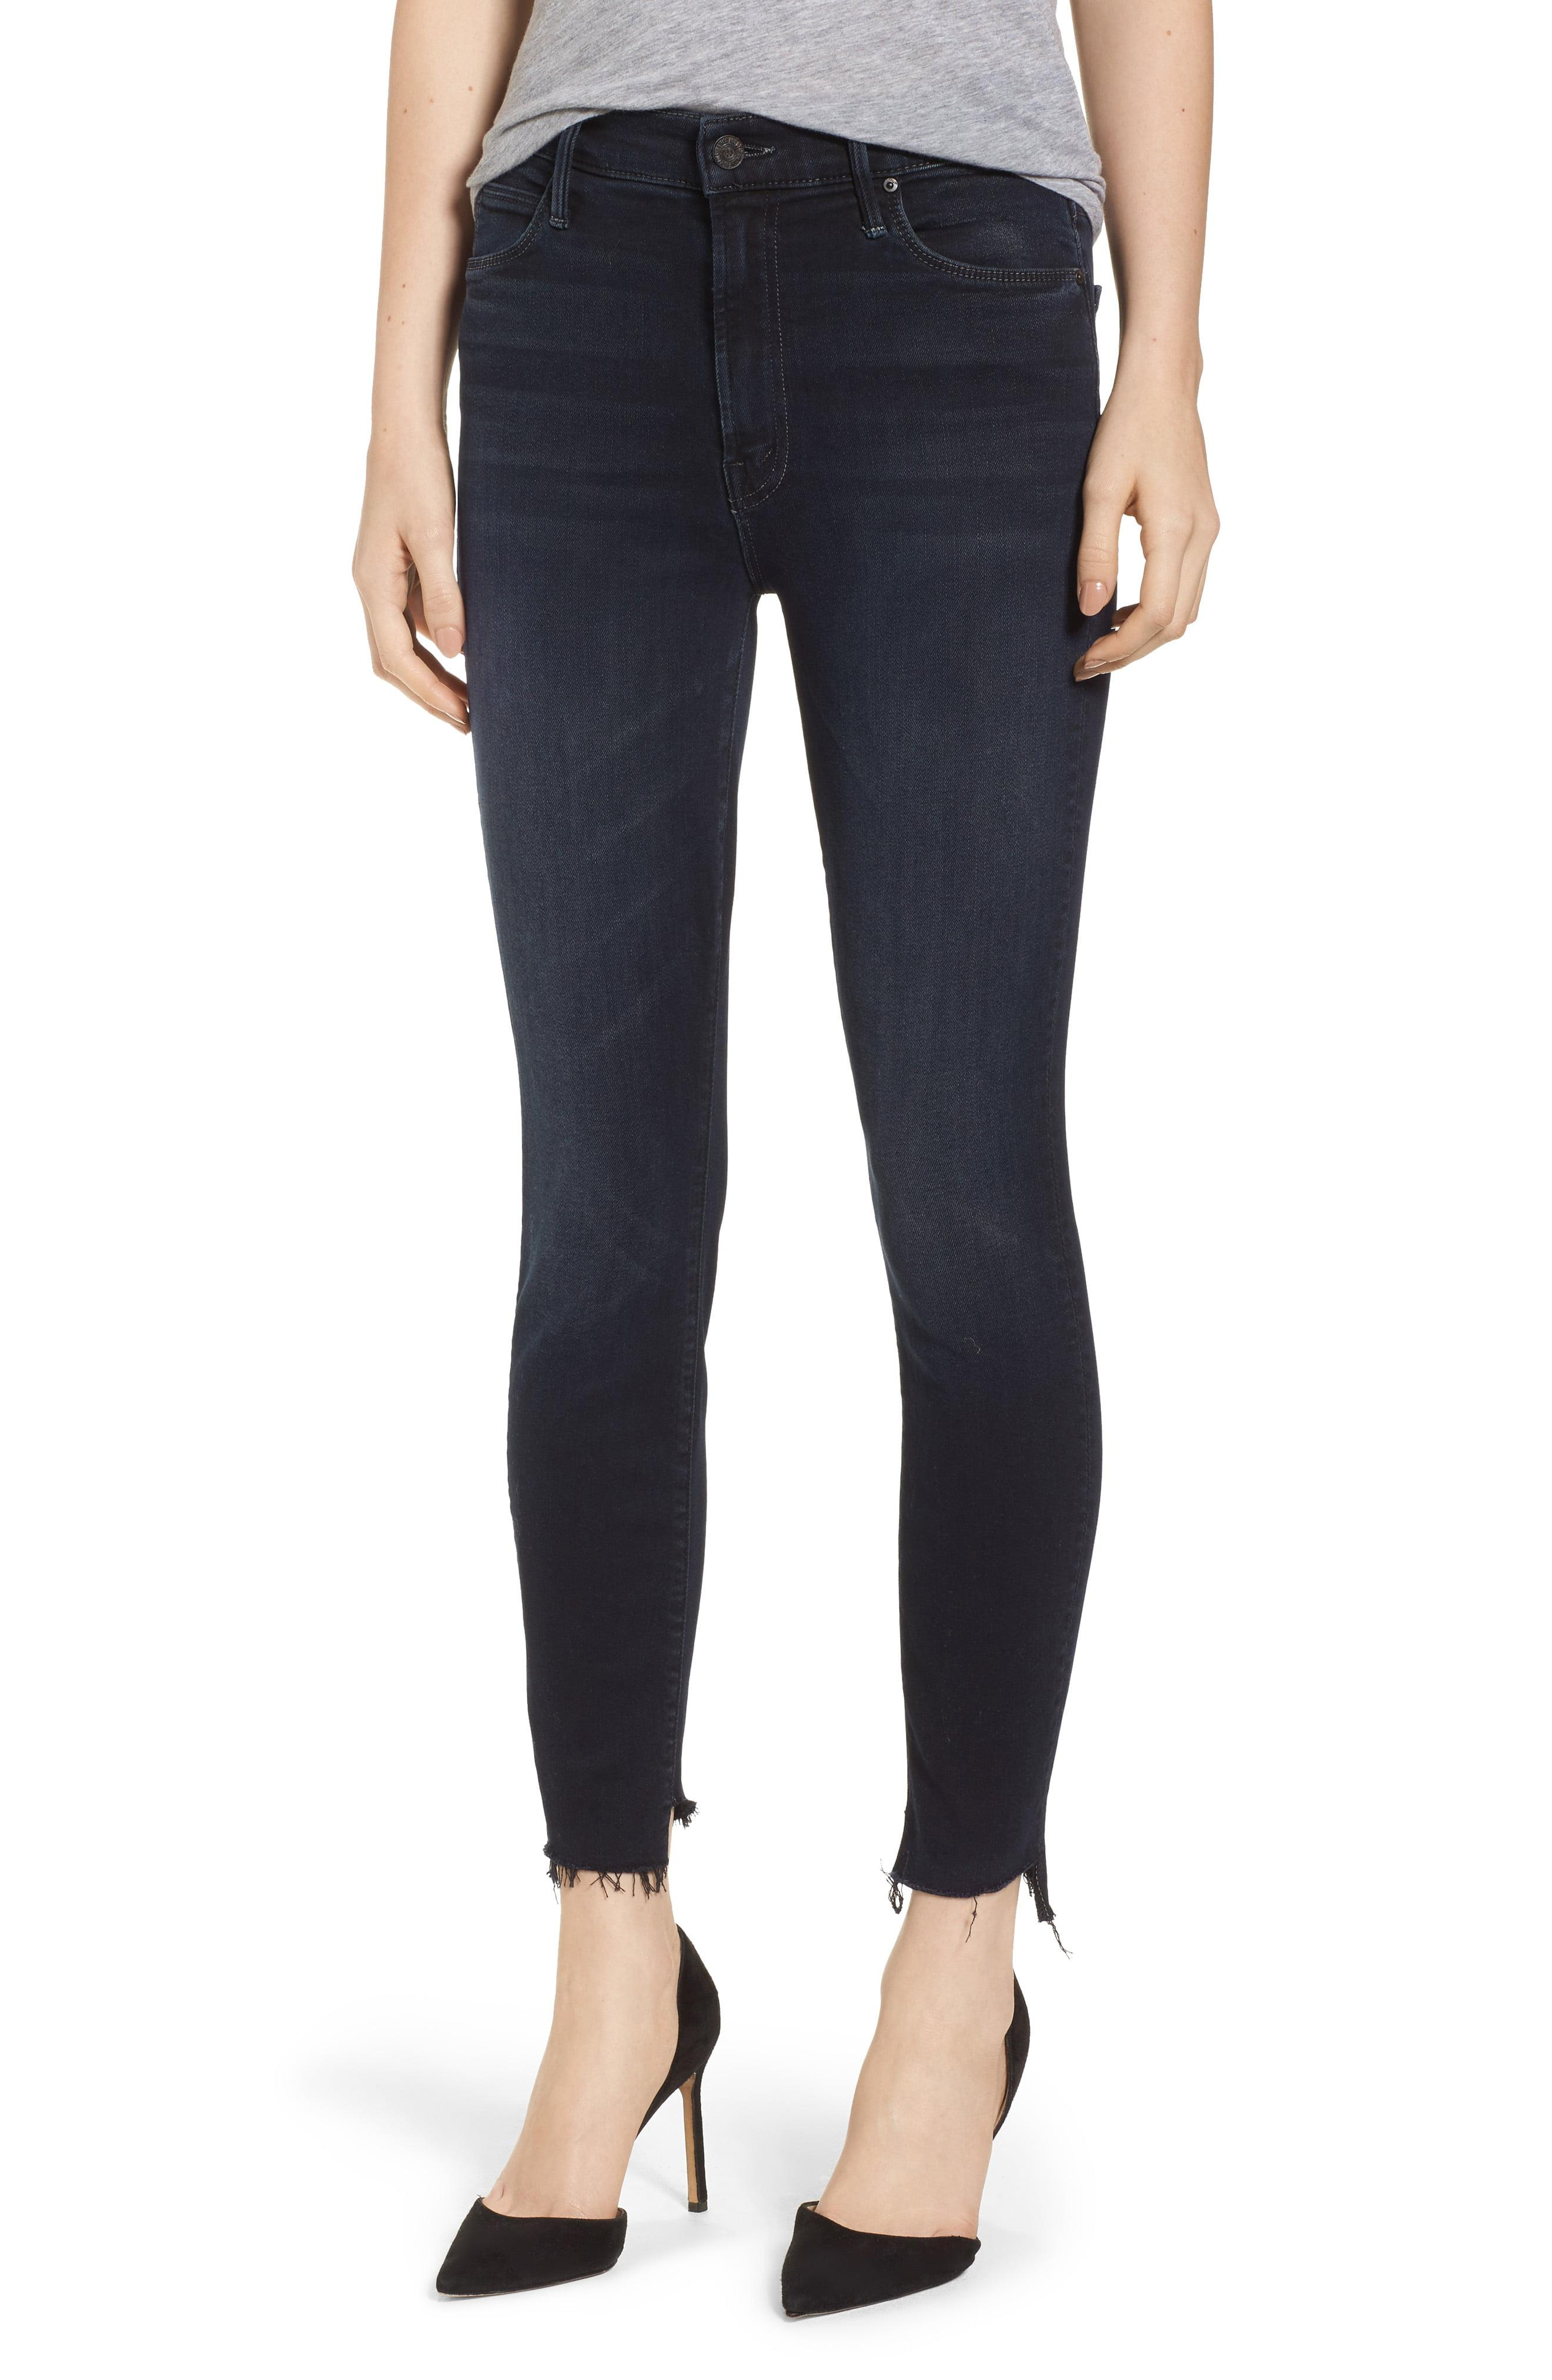 9cf8a13303849 Lyst - Mother The Stunner High Waist Fray Ankle Skinny Jeans in Blue